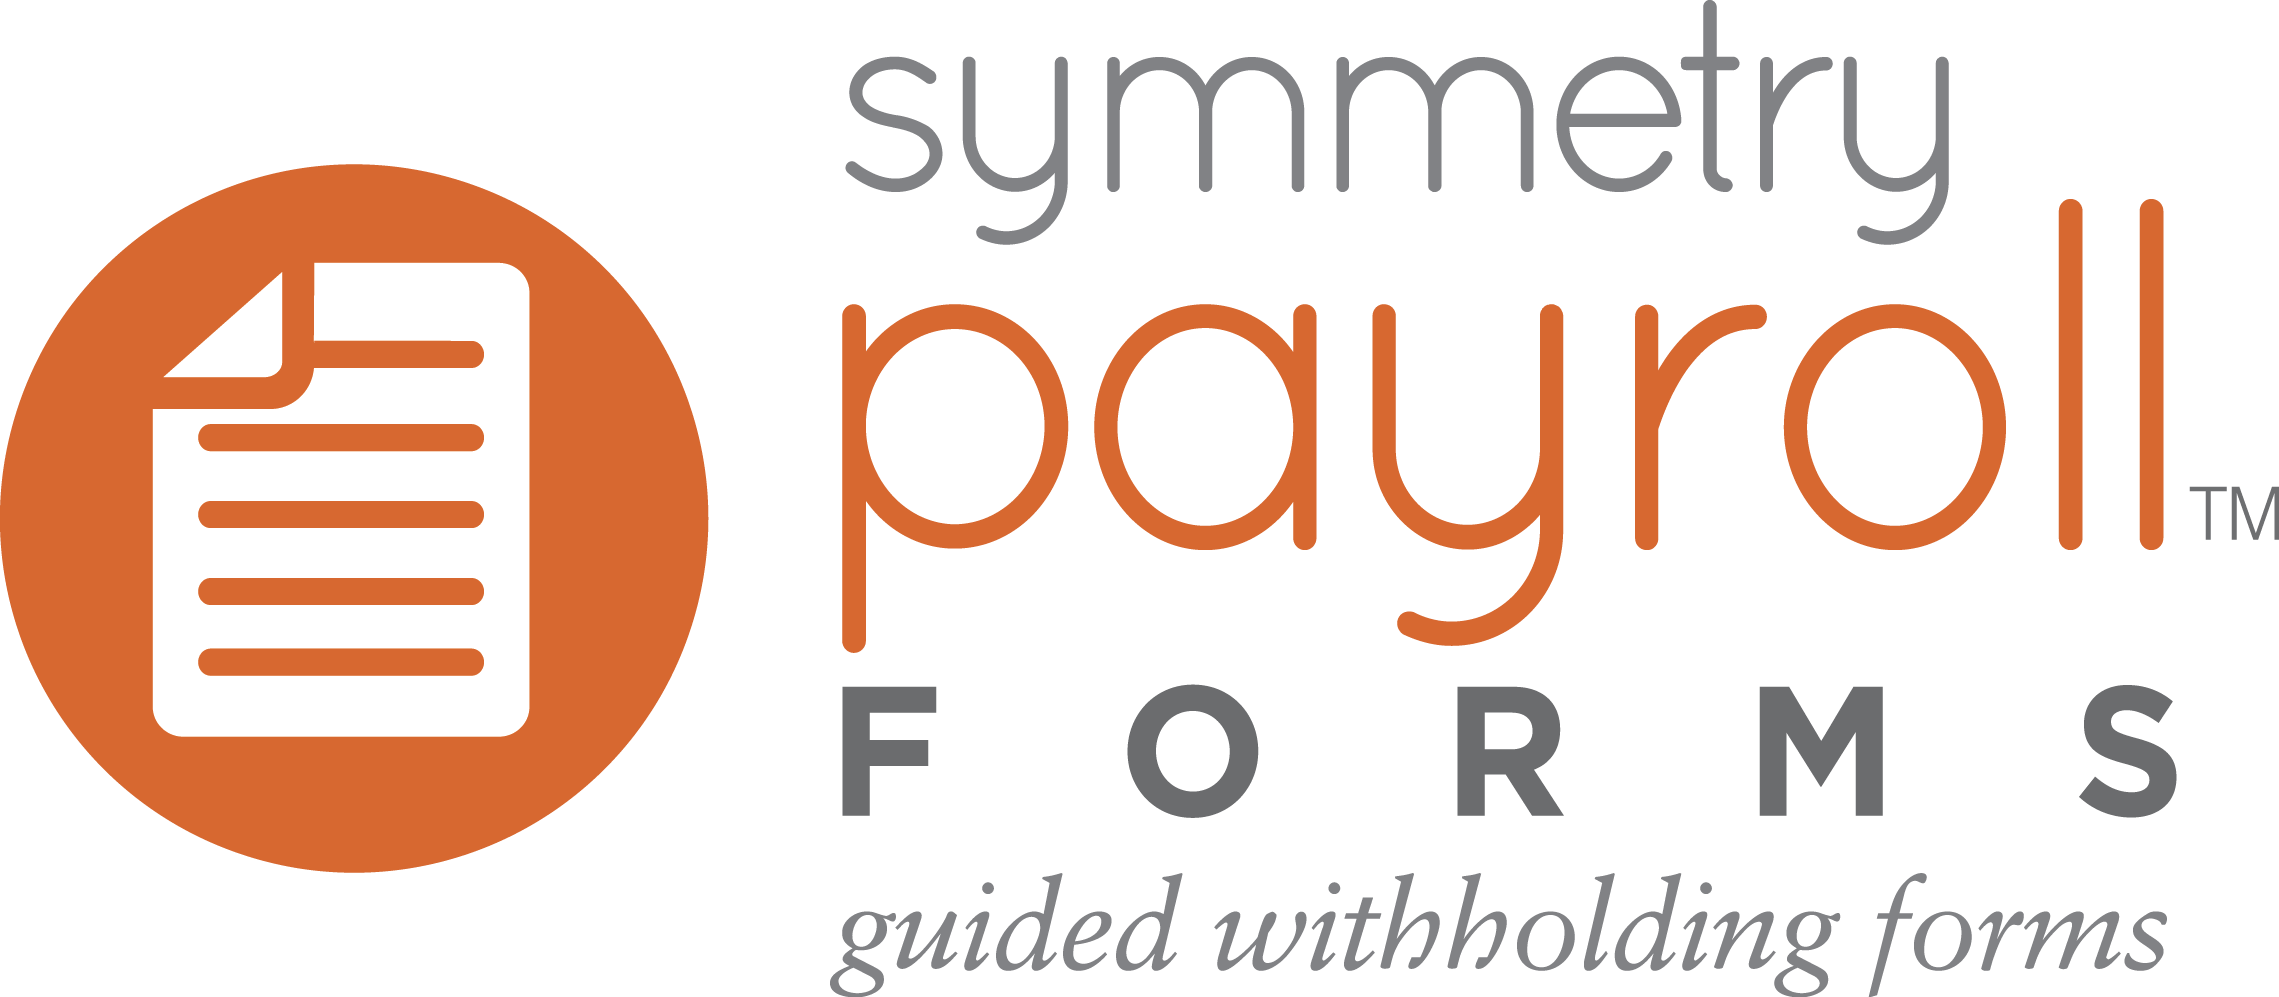 Symmetry Softwares Maria Pickens Earns Fundamental Payroll